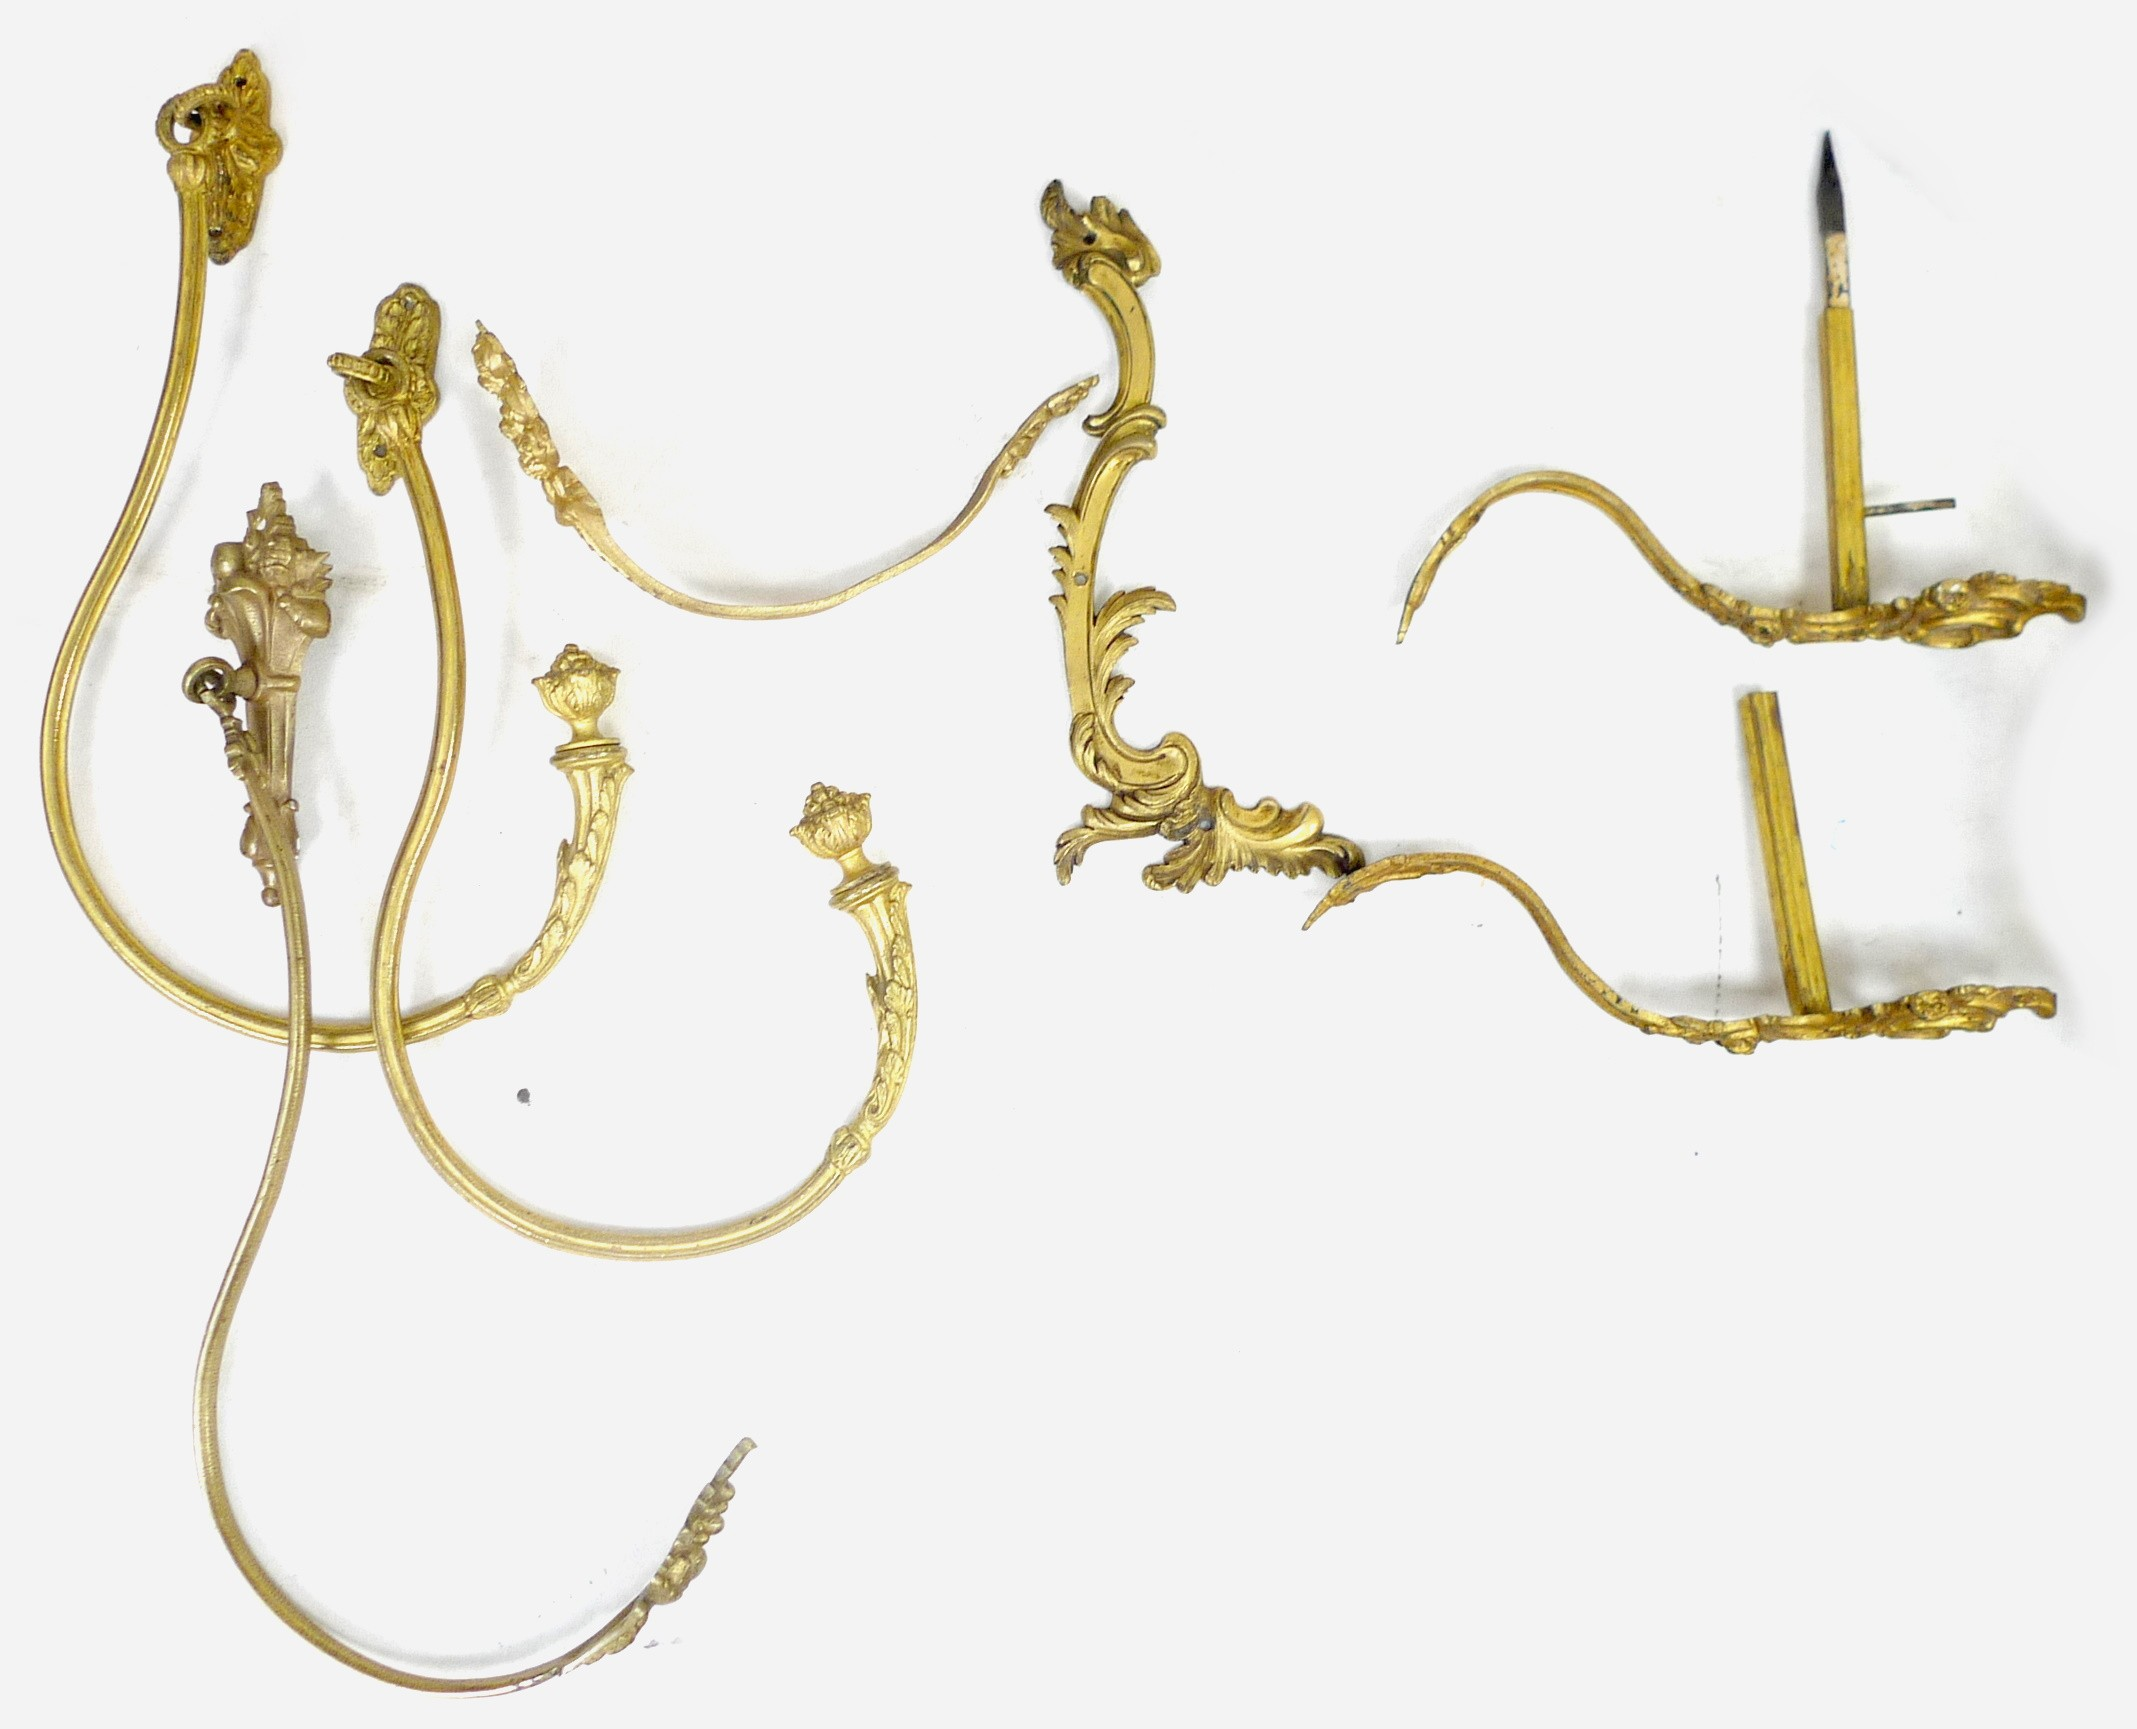 A group of brass curtain rails and curtains, including a pair of rails with pineapple finials and - Image 5 of 6